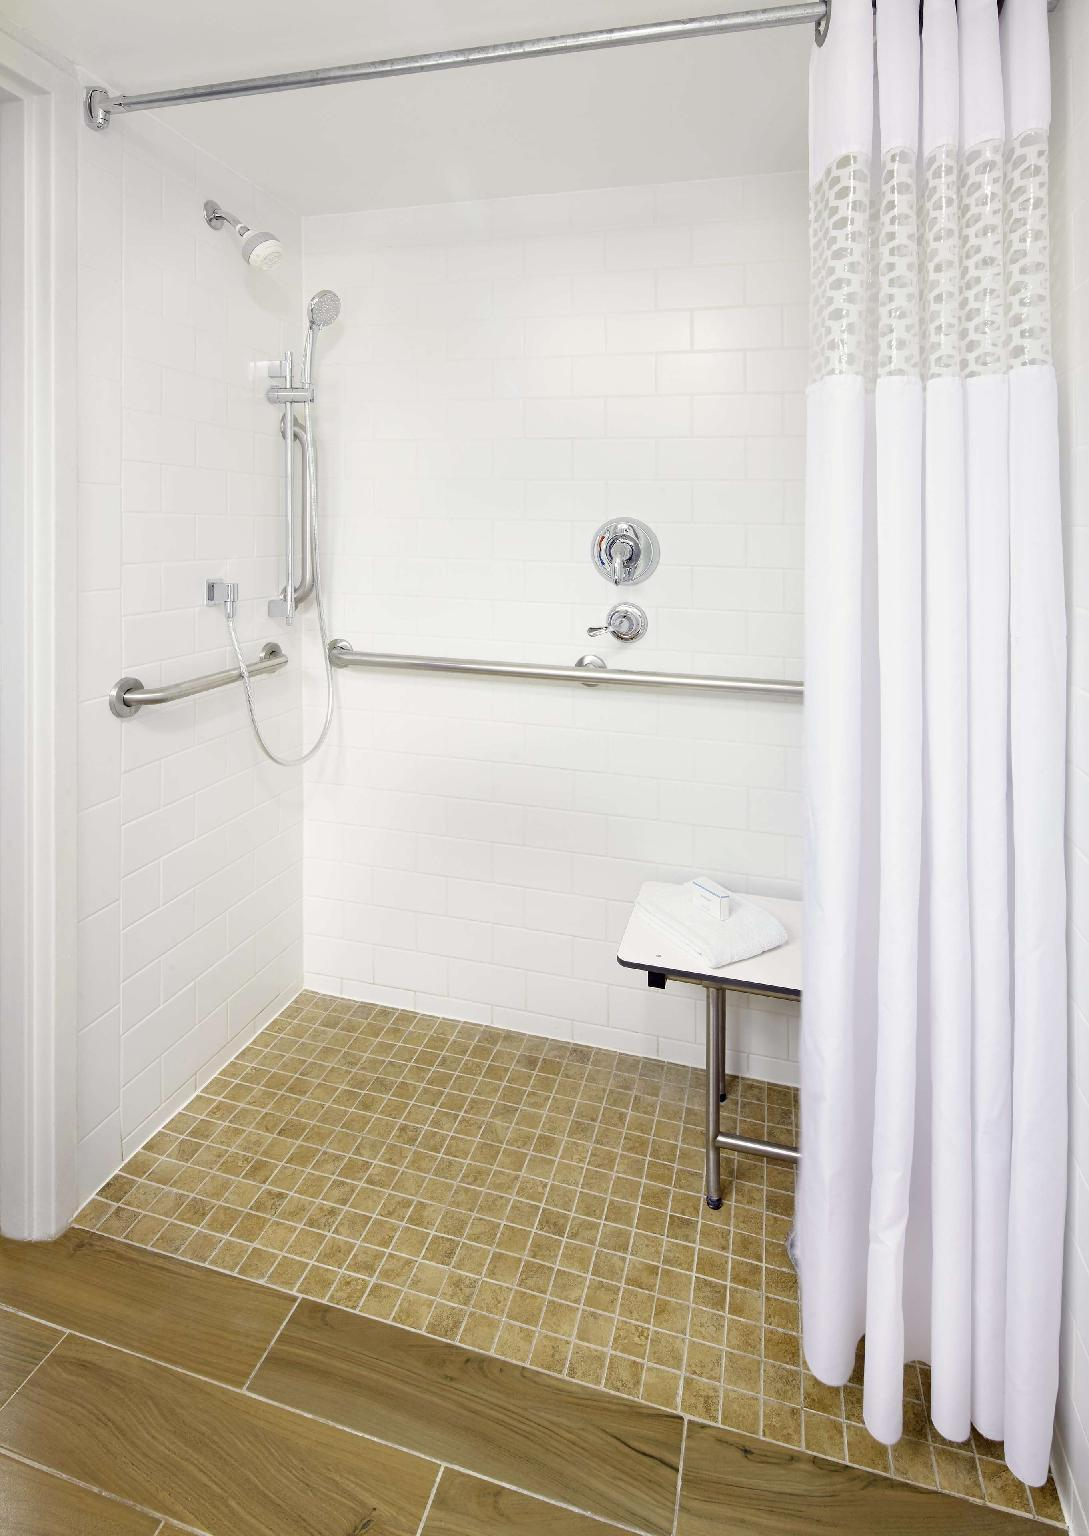 1 King Accessible Roll In Shower Non-Smoking